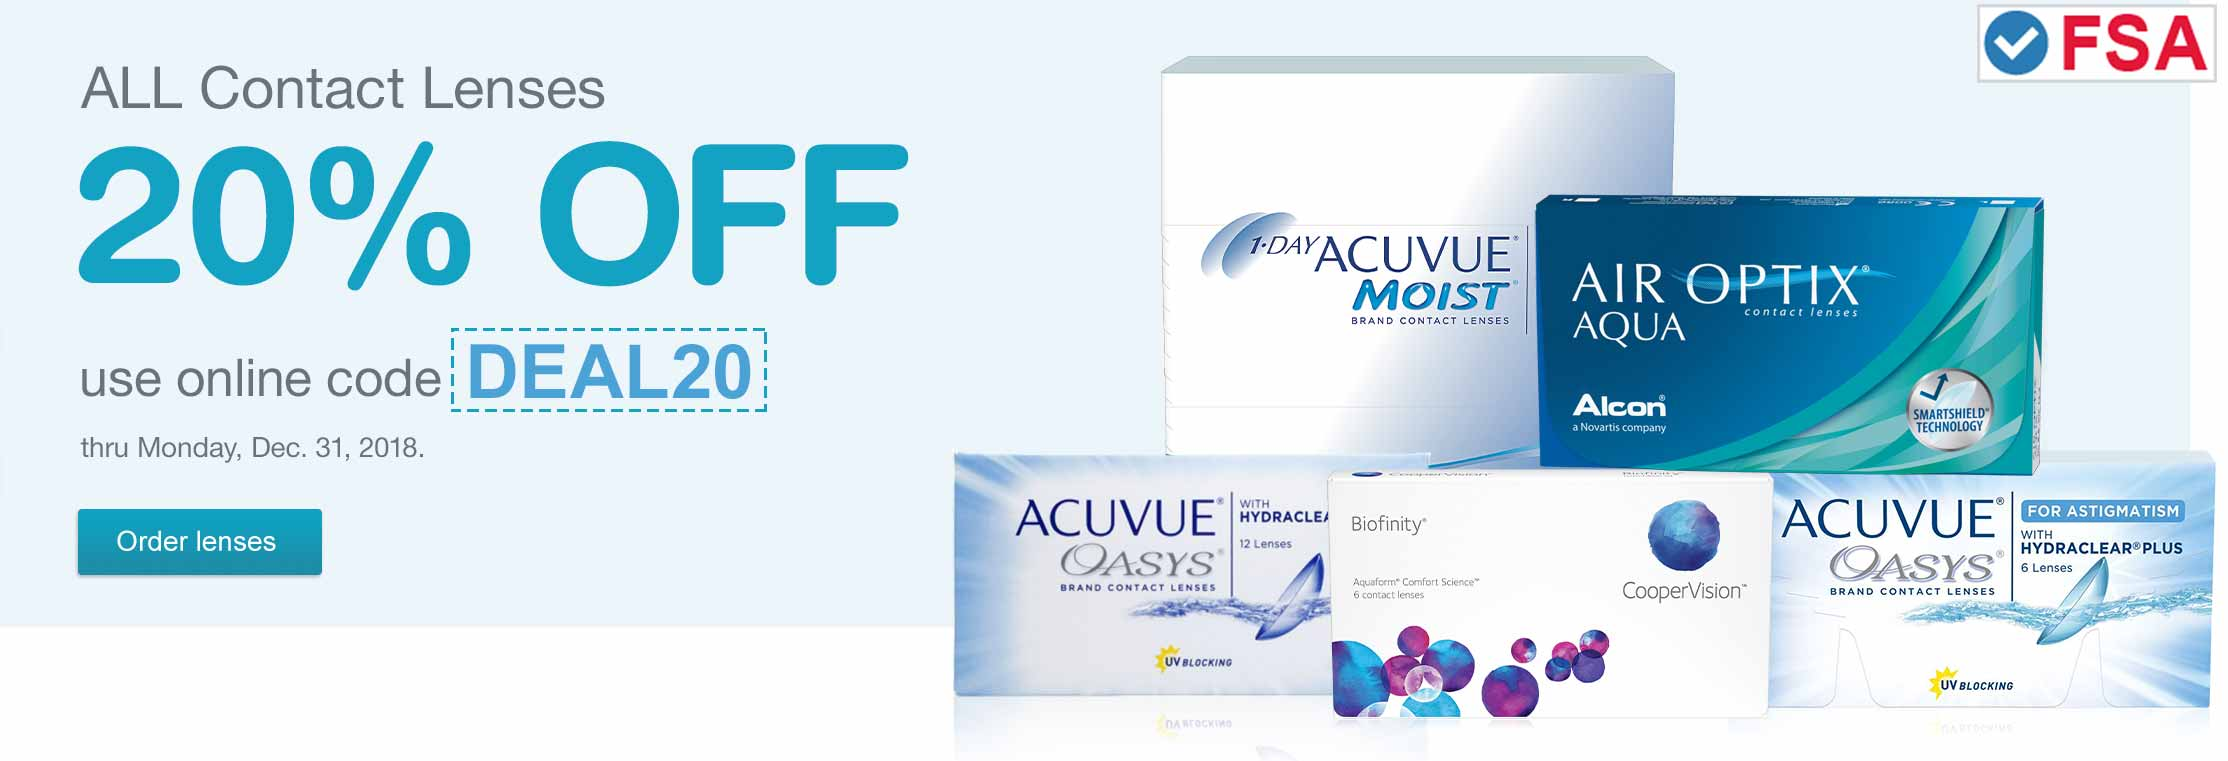 FSA approved. 20% OFF contact lenses. Use online code DEAL20 thru Mon., Dec. 31, 2018. Order lenses.